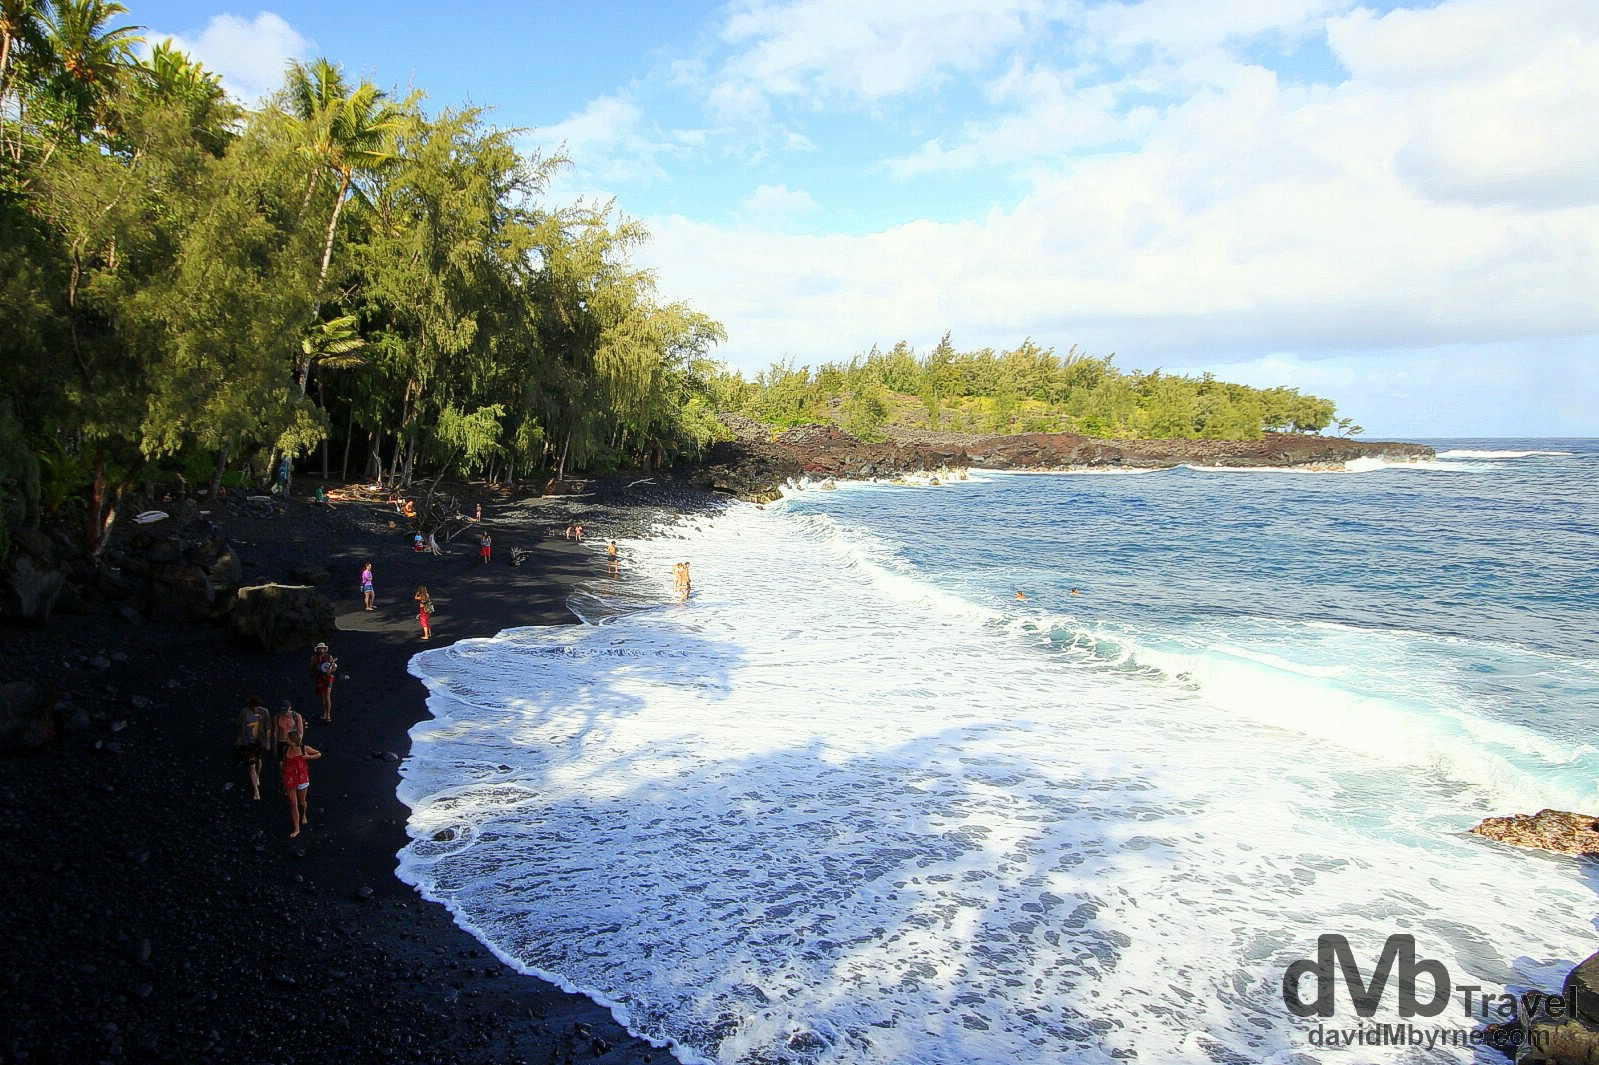 Kehena Beach was only created in 1955 by a lava flow that laid waste to the area, a powerful testament to the changing nature of the Big Island. Kehena Black Sand Beach, The Big Island, Hawaii. March 1st 2013.